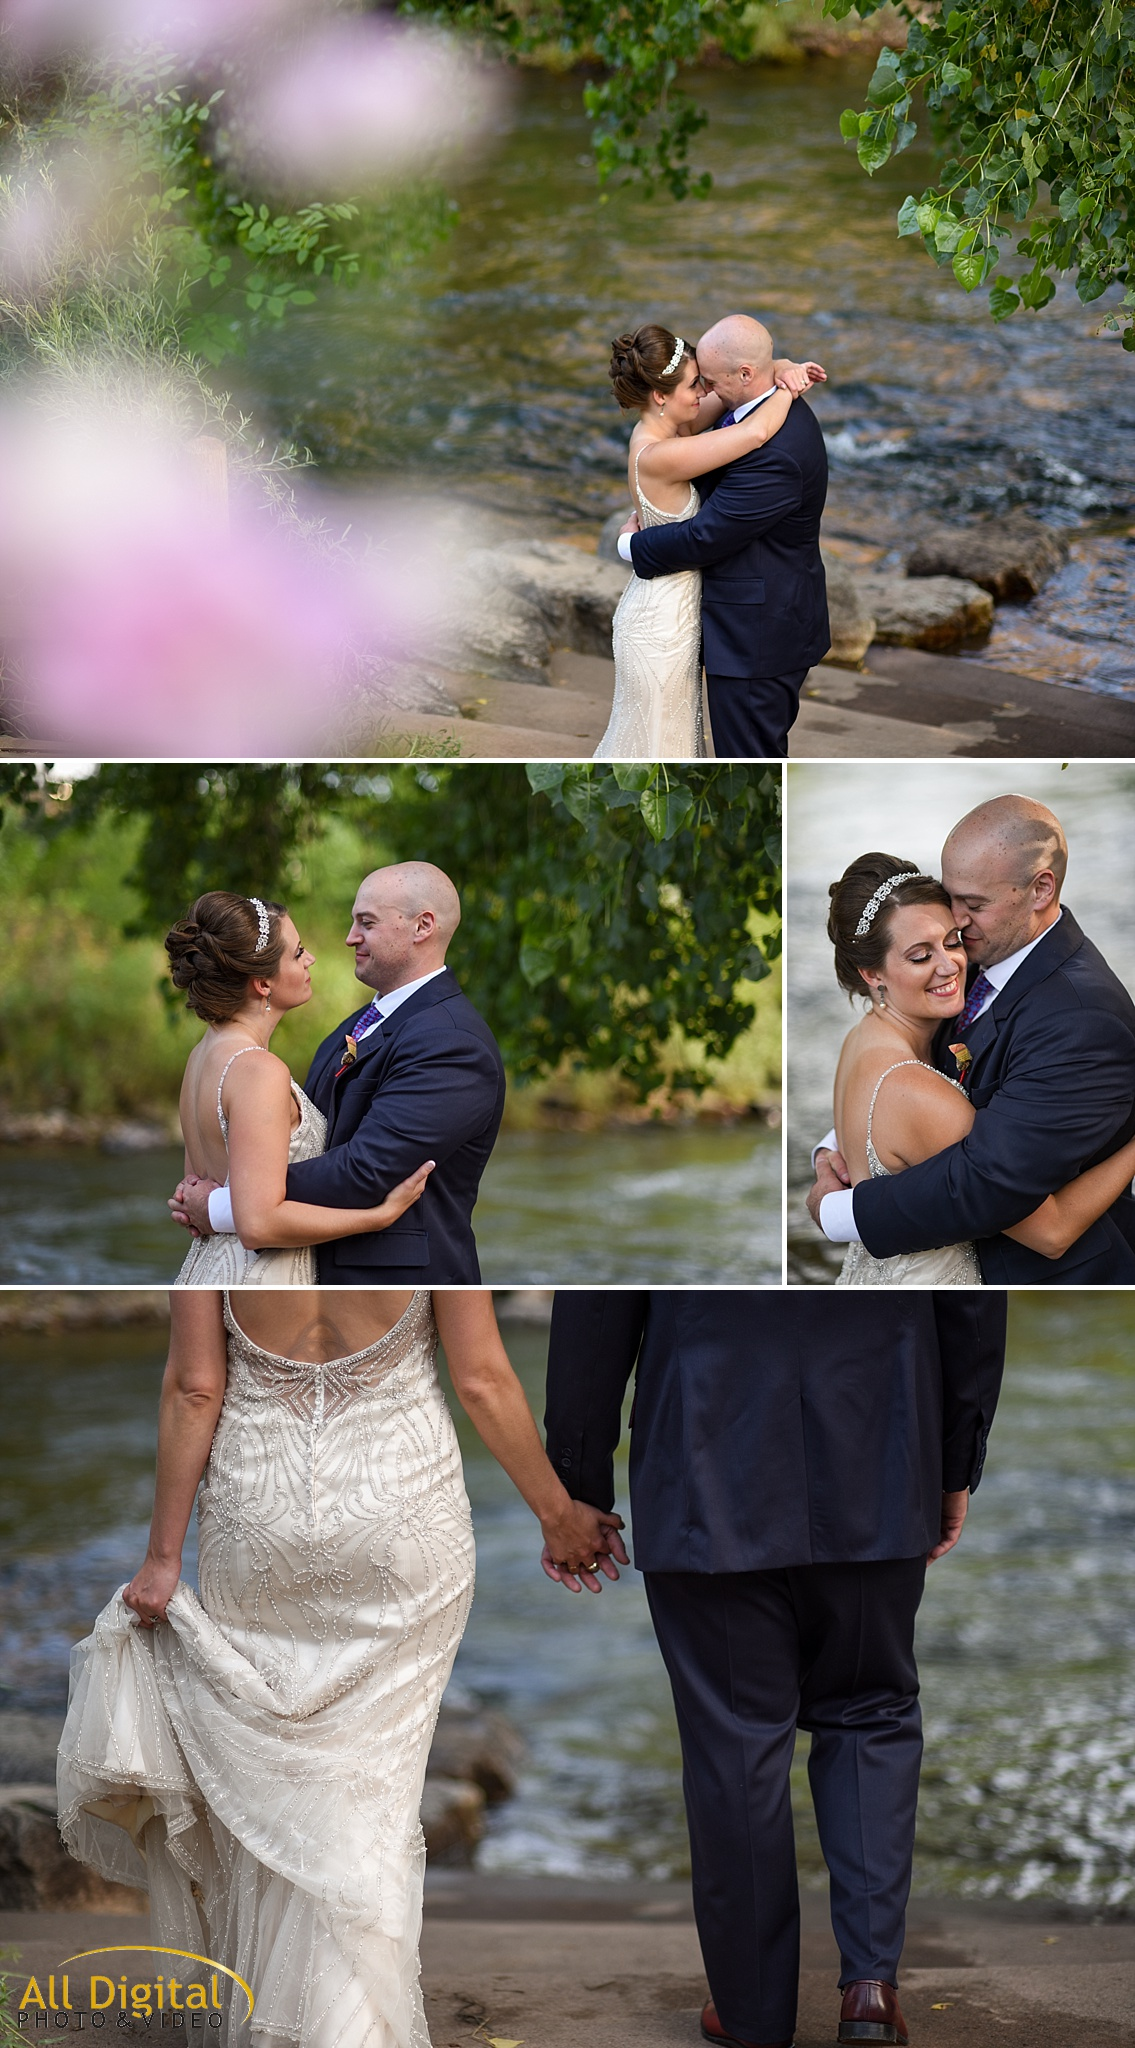 Mary & Jeremy's Romantic Portraits at the Golden Hotel photographed by All Digital Studios.